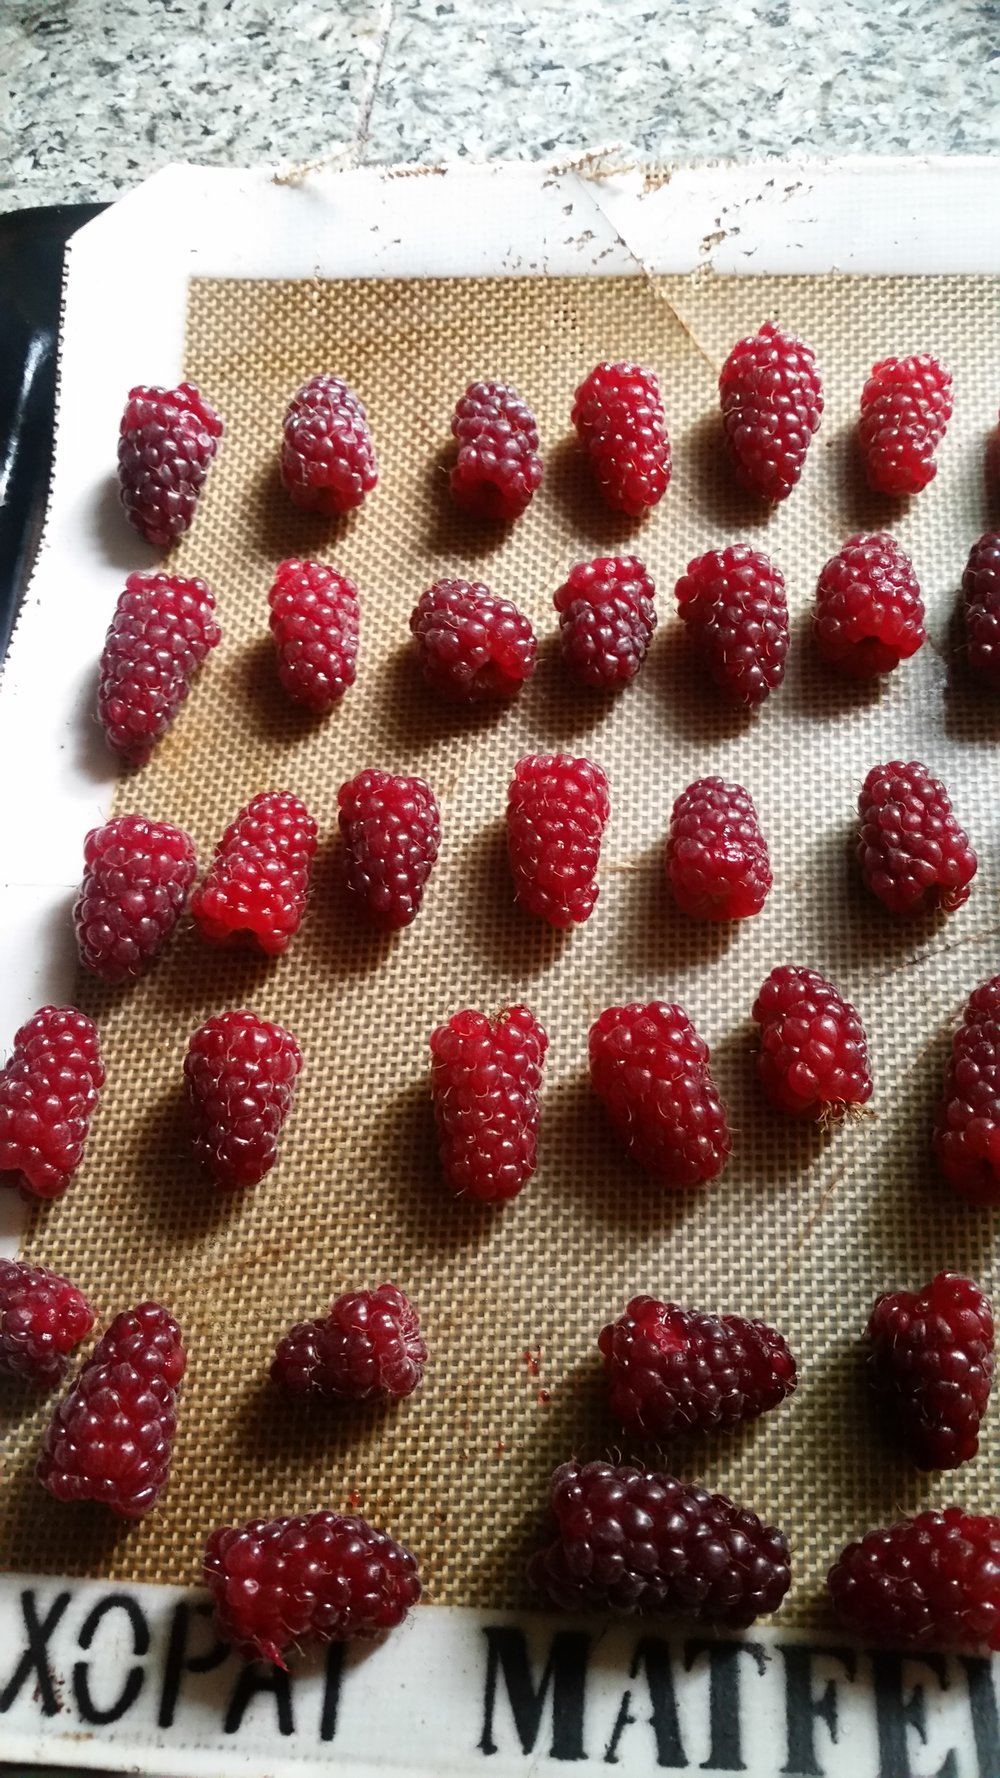 Ladies and gentlemen, I give you an army of tayberries.